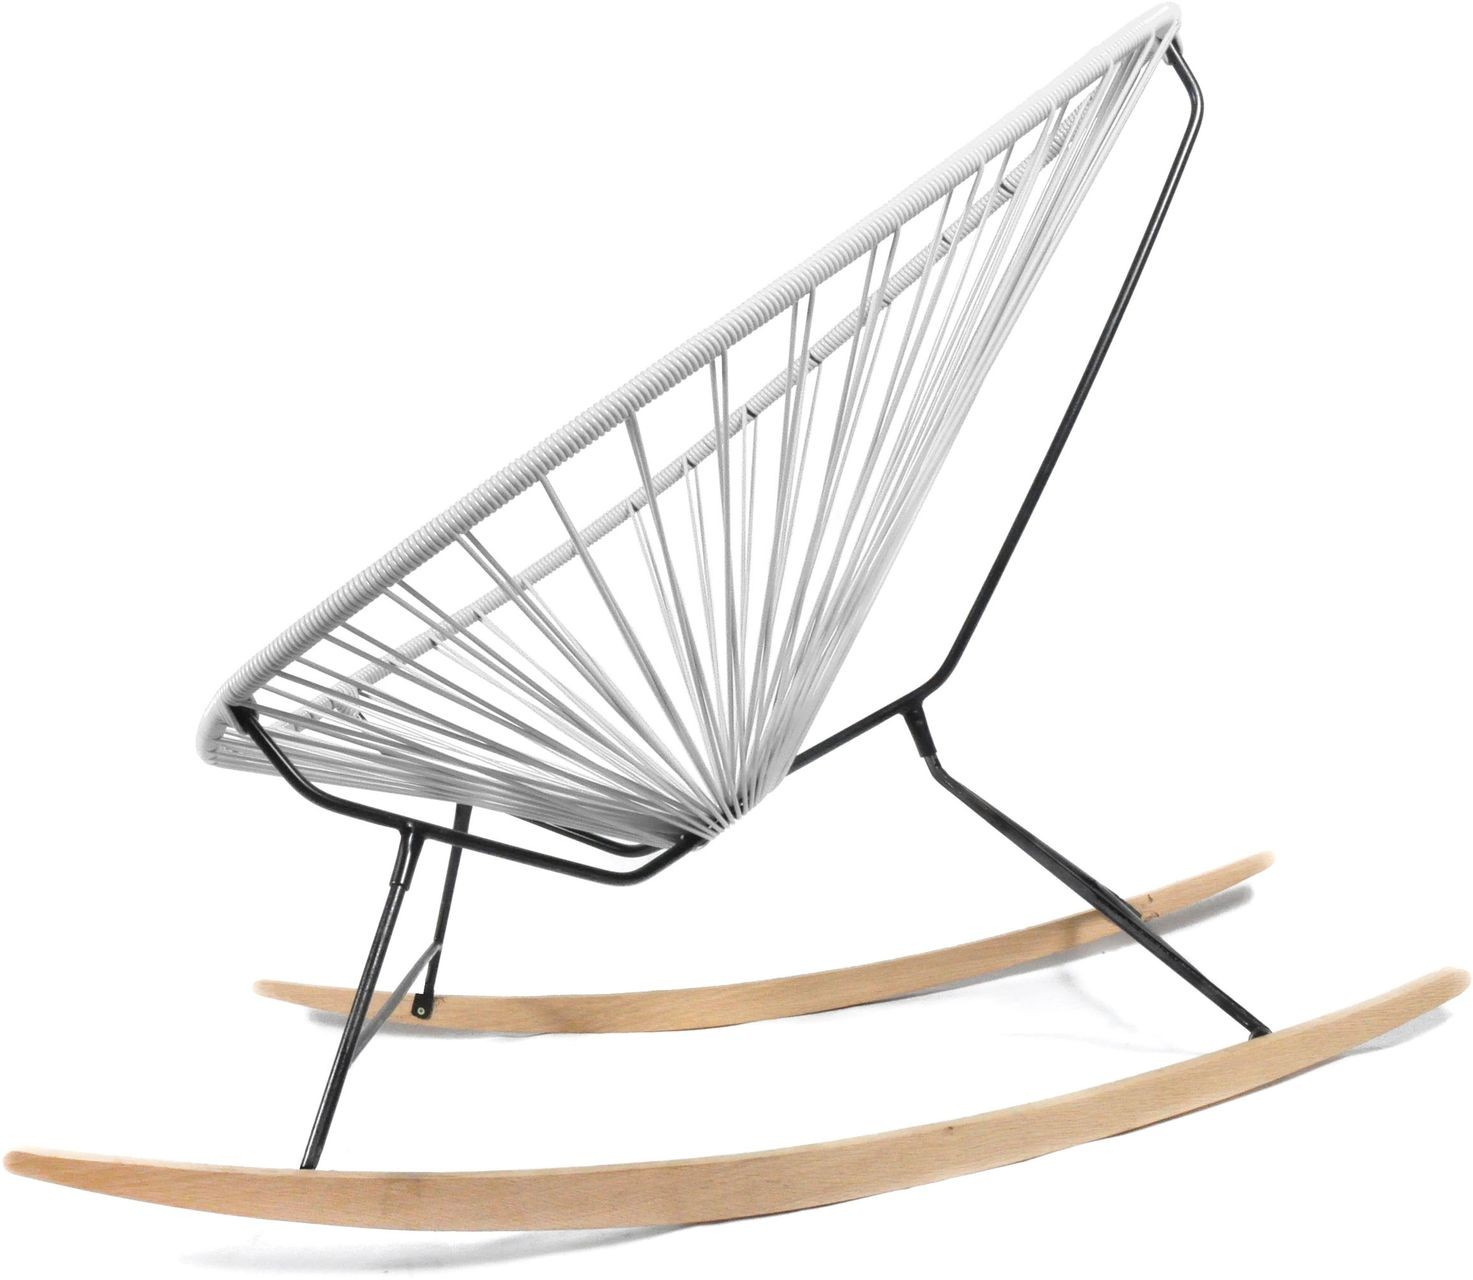 Acapulco chair wood rocker design schaukelstuhl boqa for Schaukelstuhl zum stillen